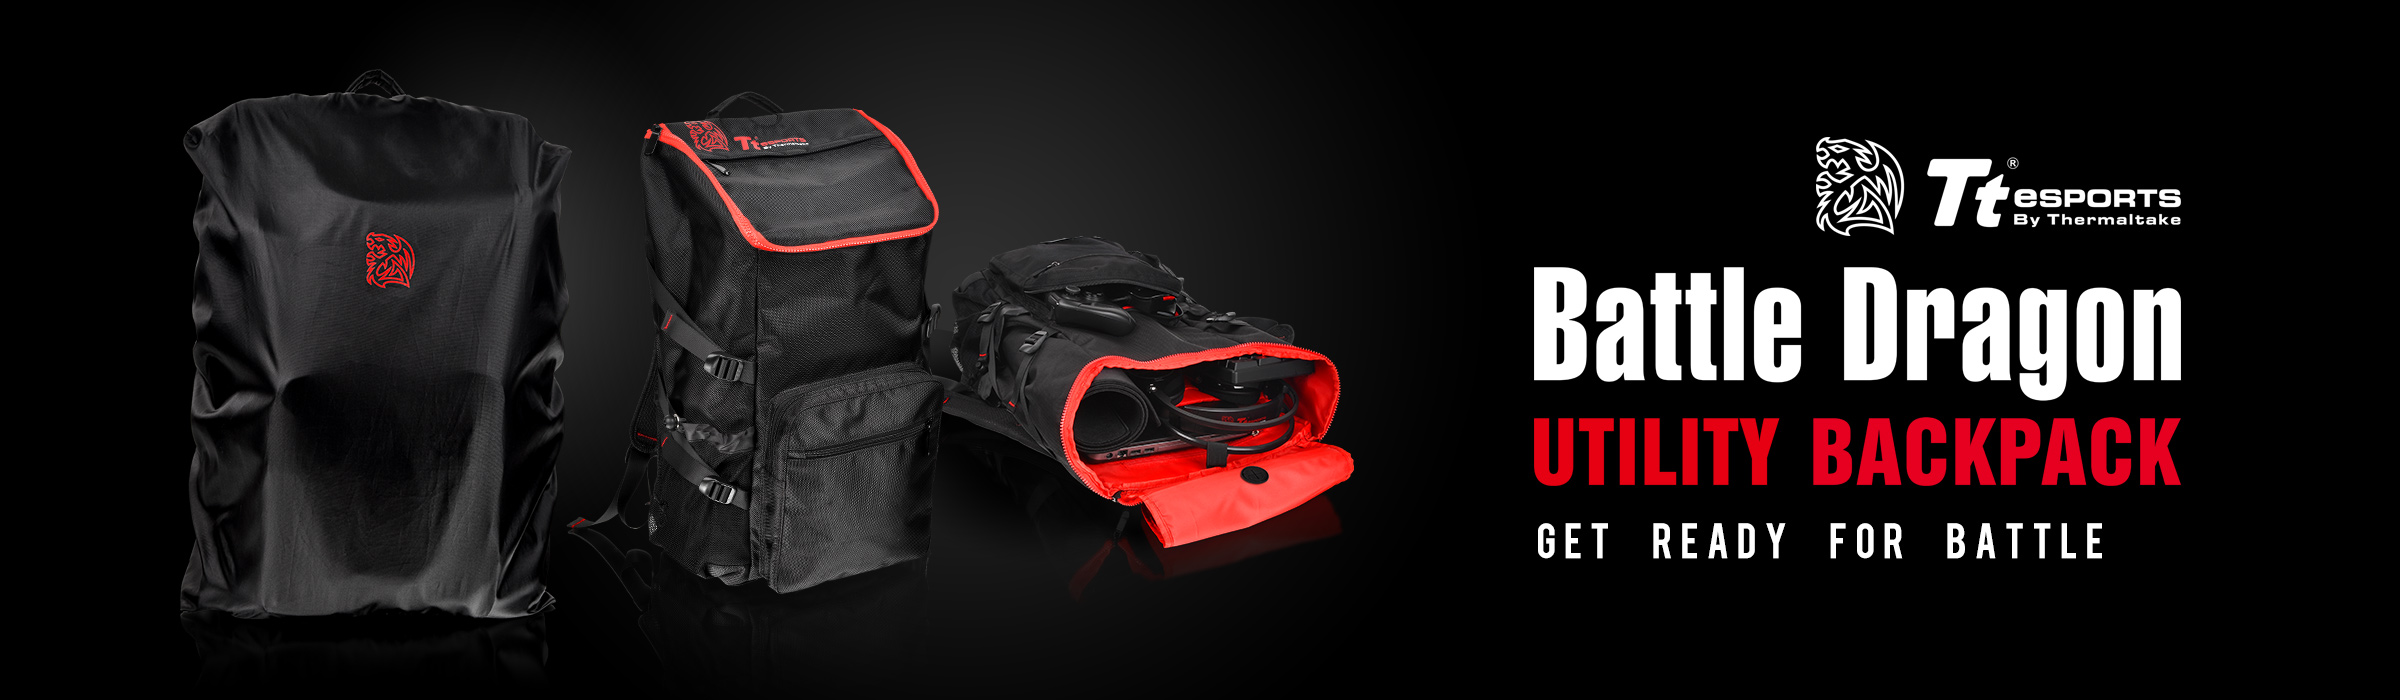 Tt eSPORTS BATTLE DRAGON UTILITY BACKPACK_ Banner